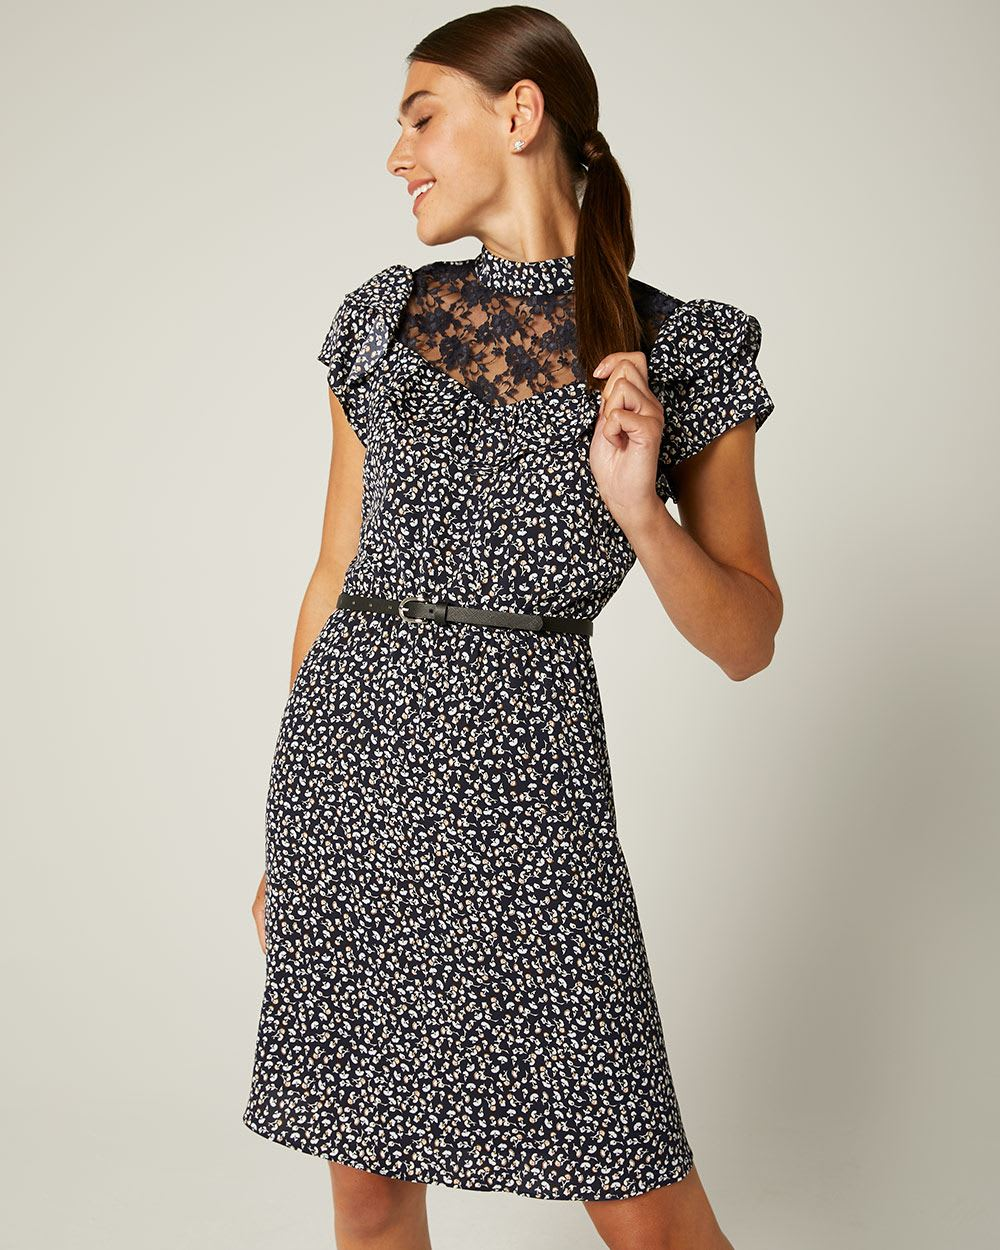 Lace-trimmed Fit and Flare Dress